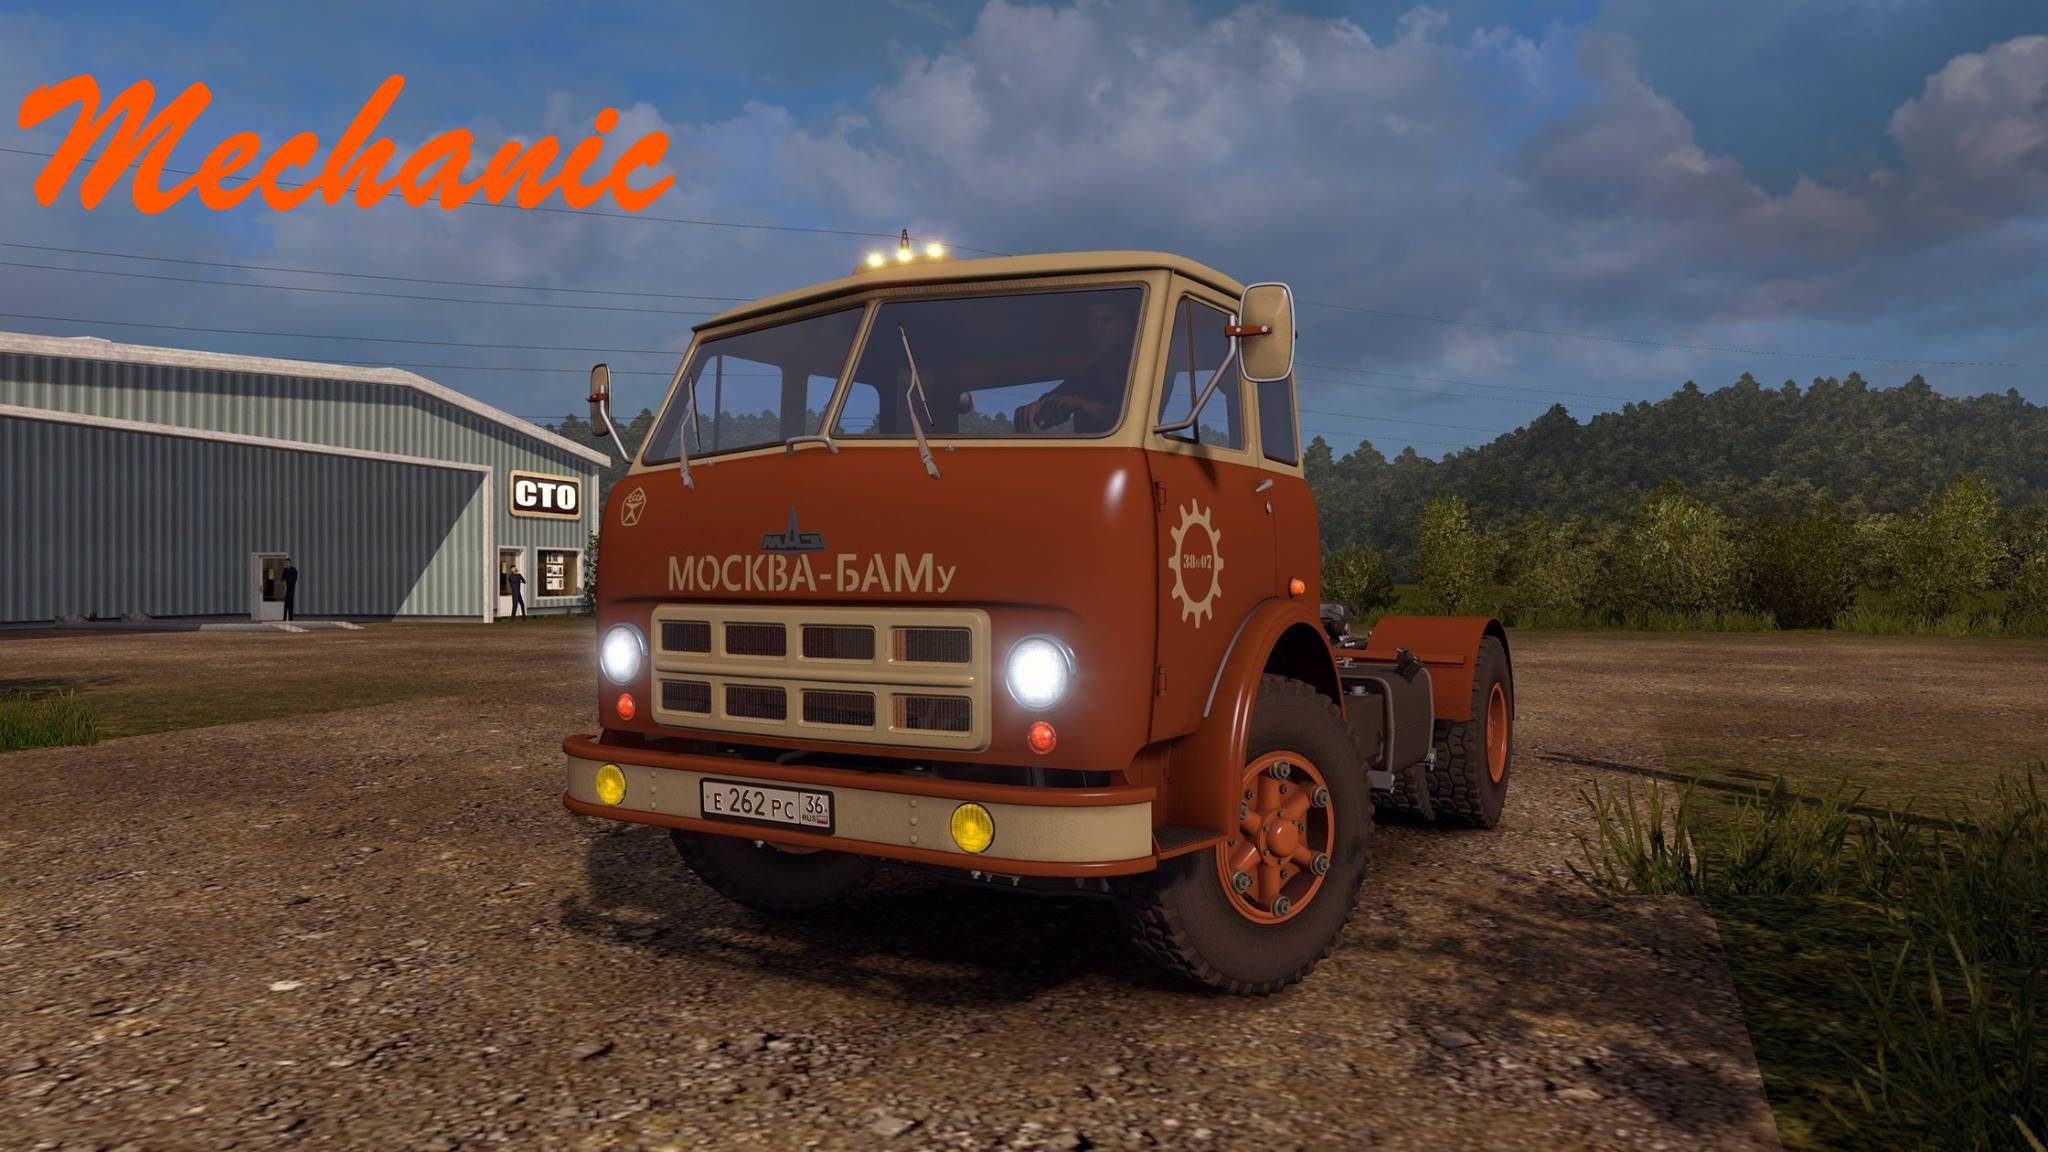 МАЗ-500 - ETS 2.